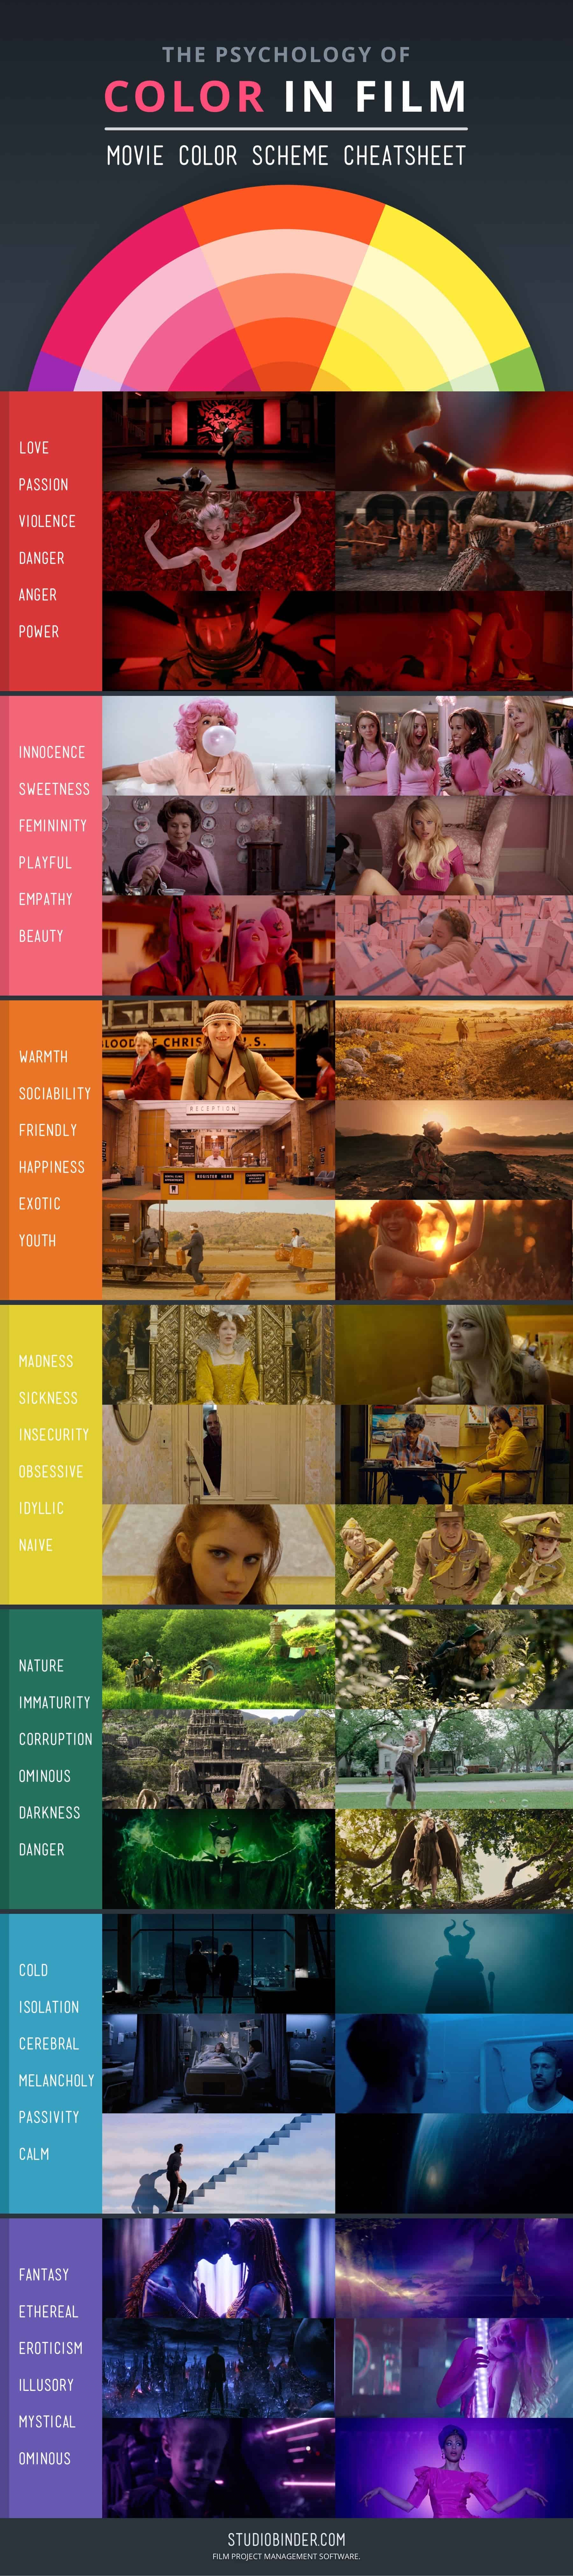 The Psychology Of Color In Film | Daily Infographic